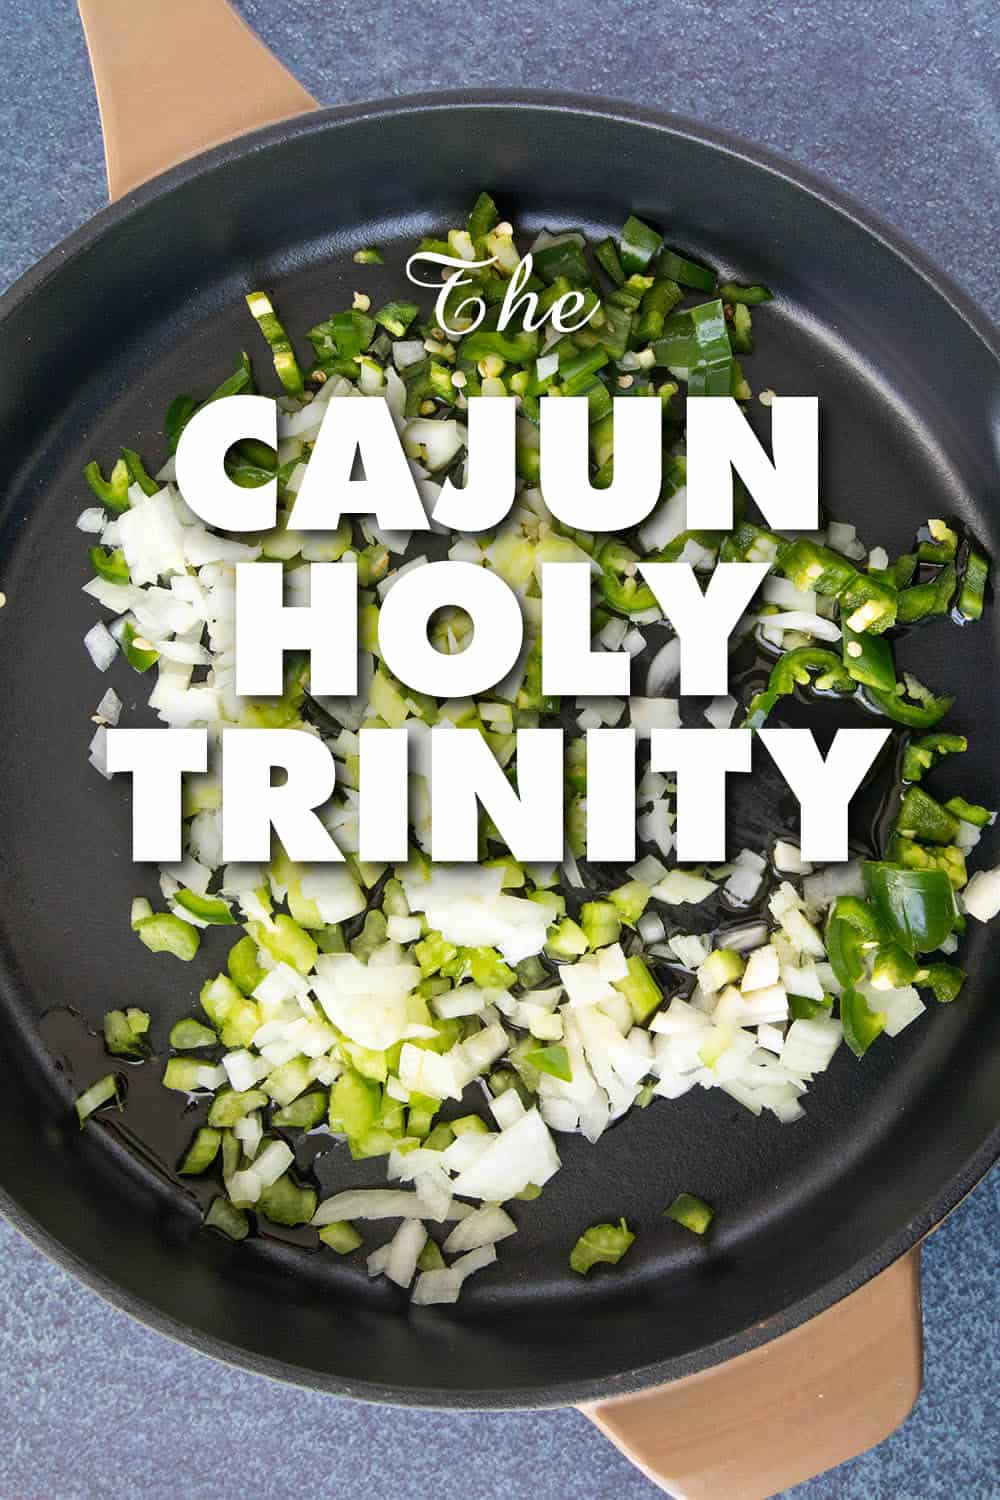 The Cajun Holy Trinity – A Must for Cajun Cuisine